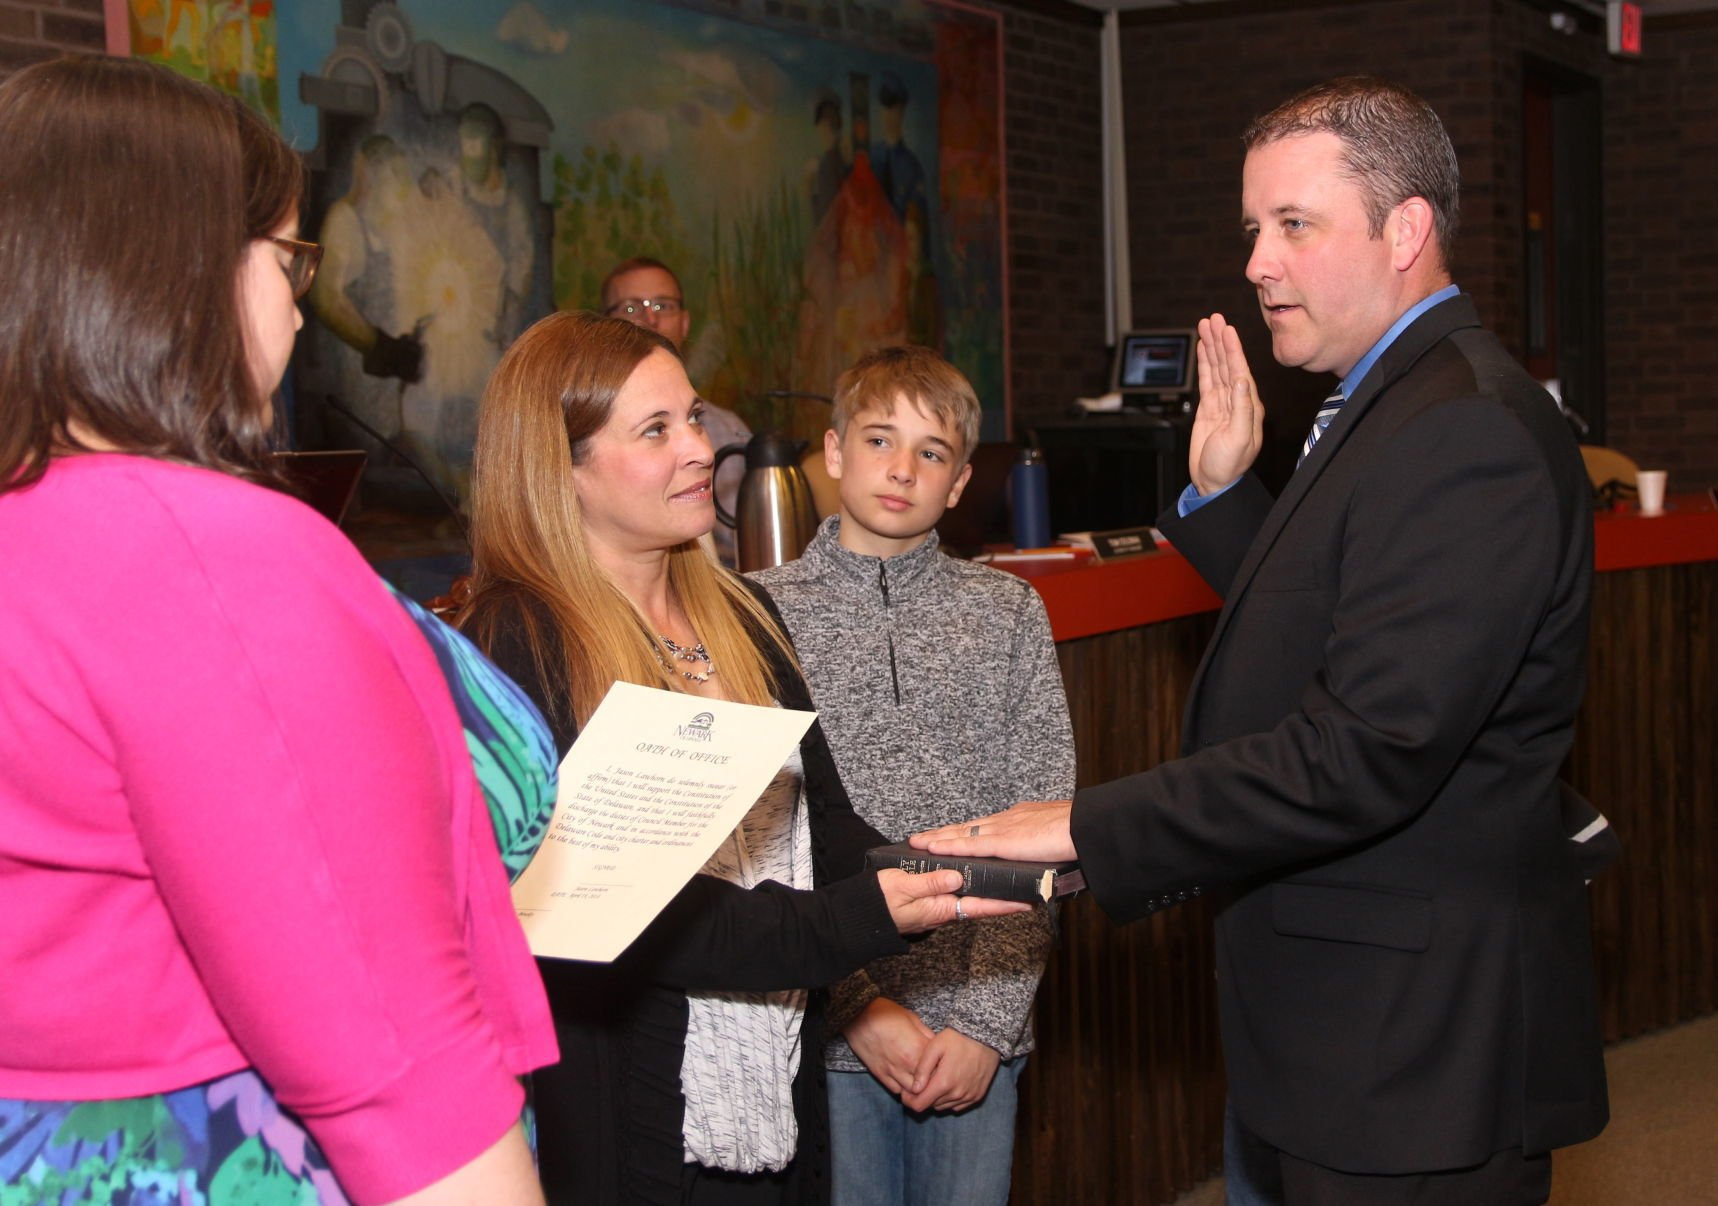 Newark council members sworn in | Newark Post